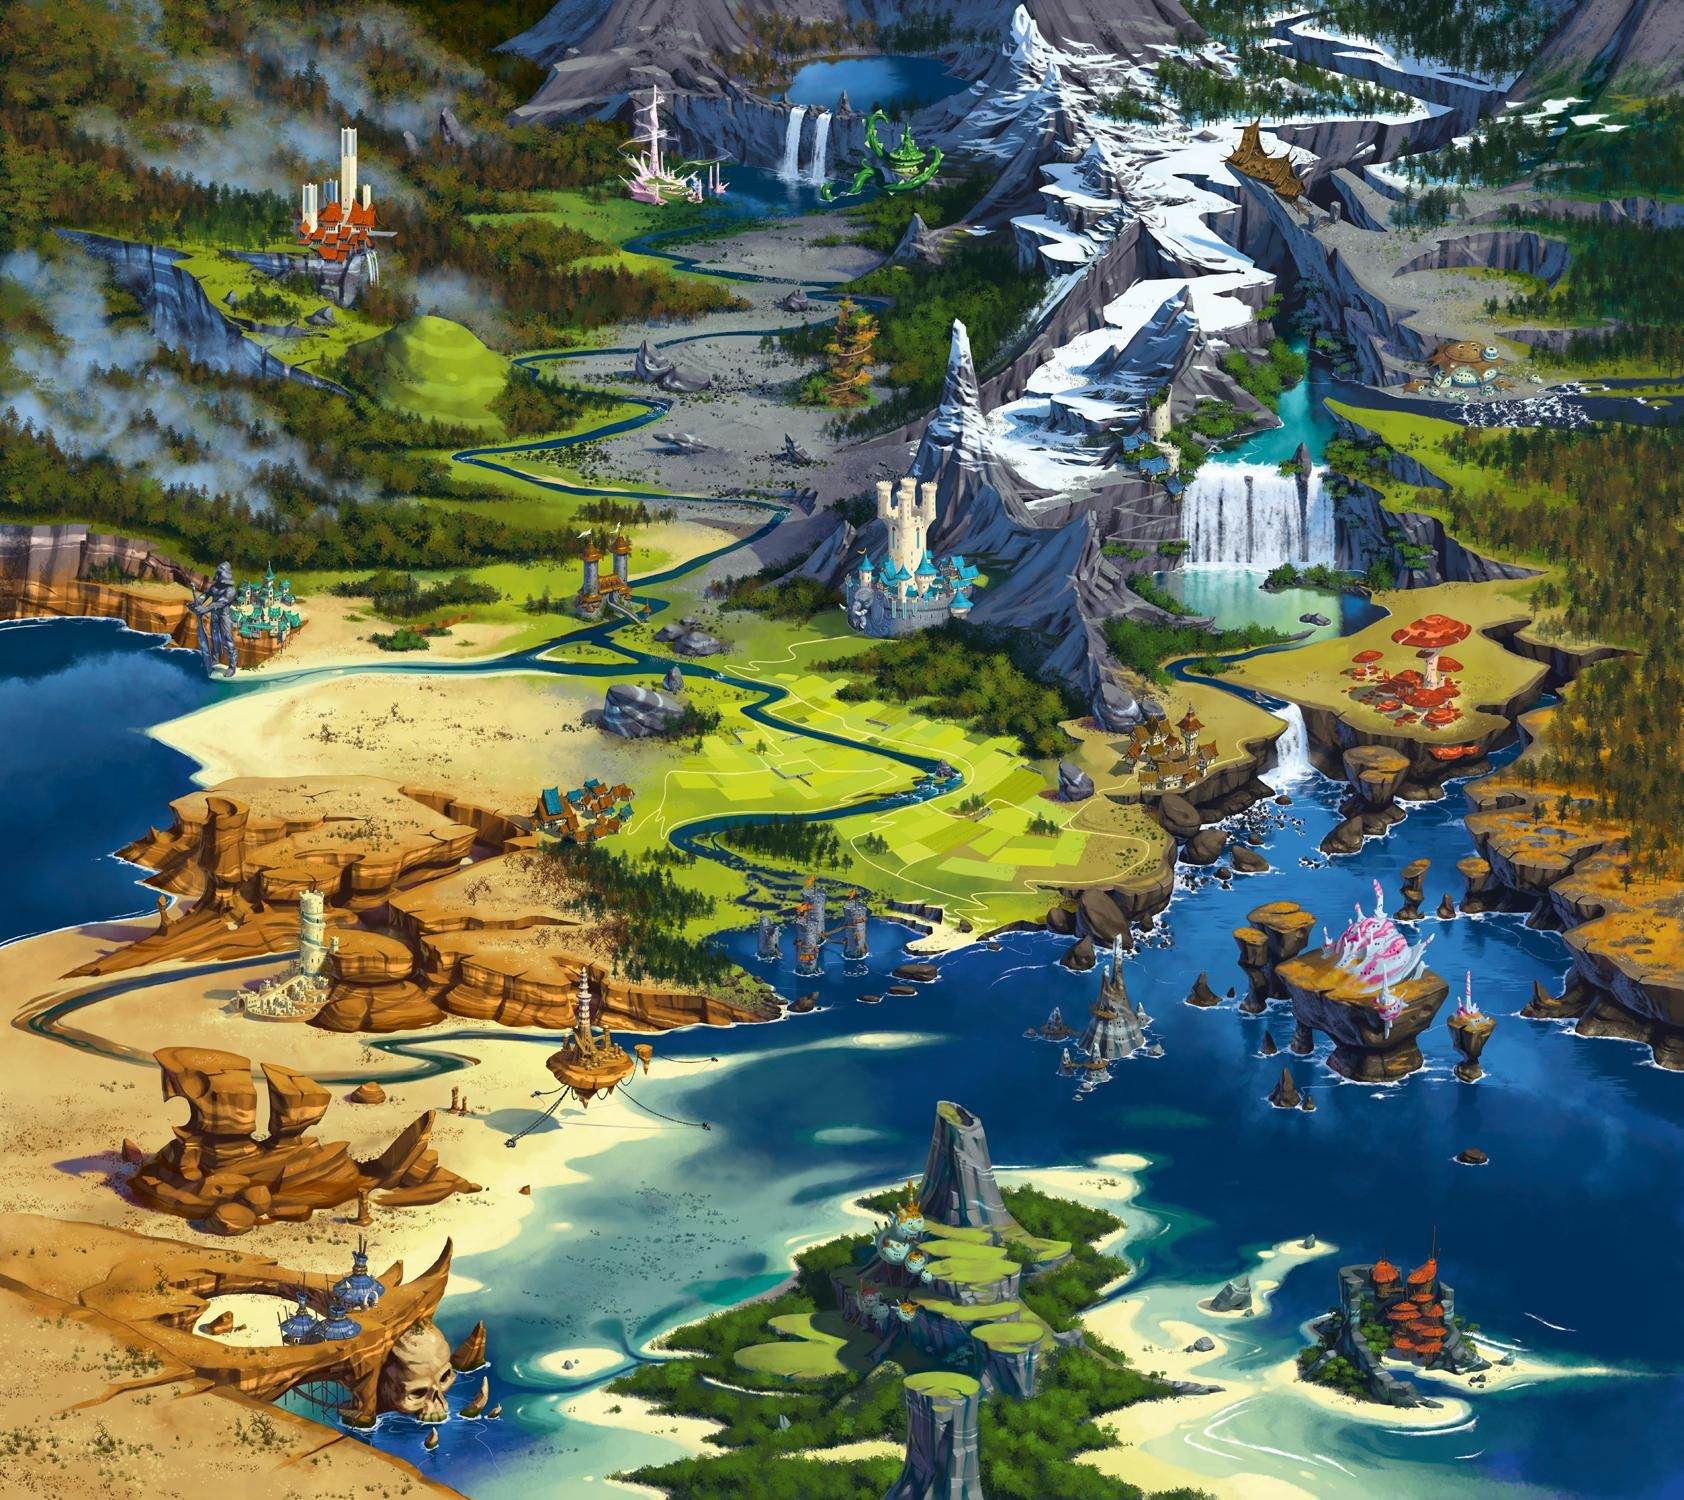 Map : Are there any maps of regions of Earth in this fantasy style